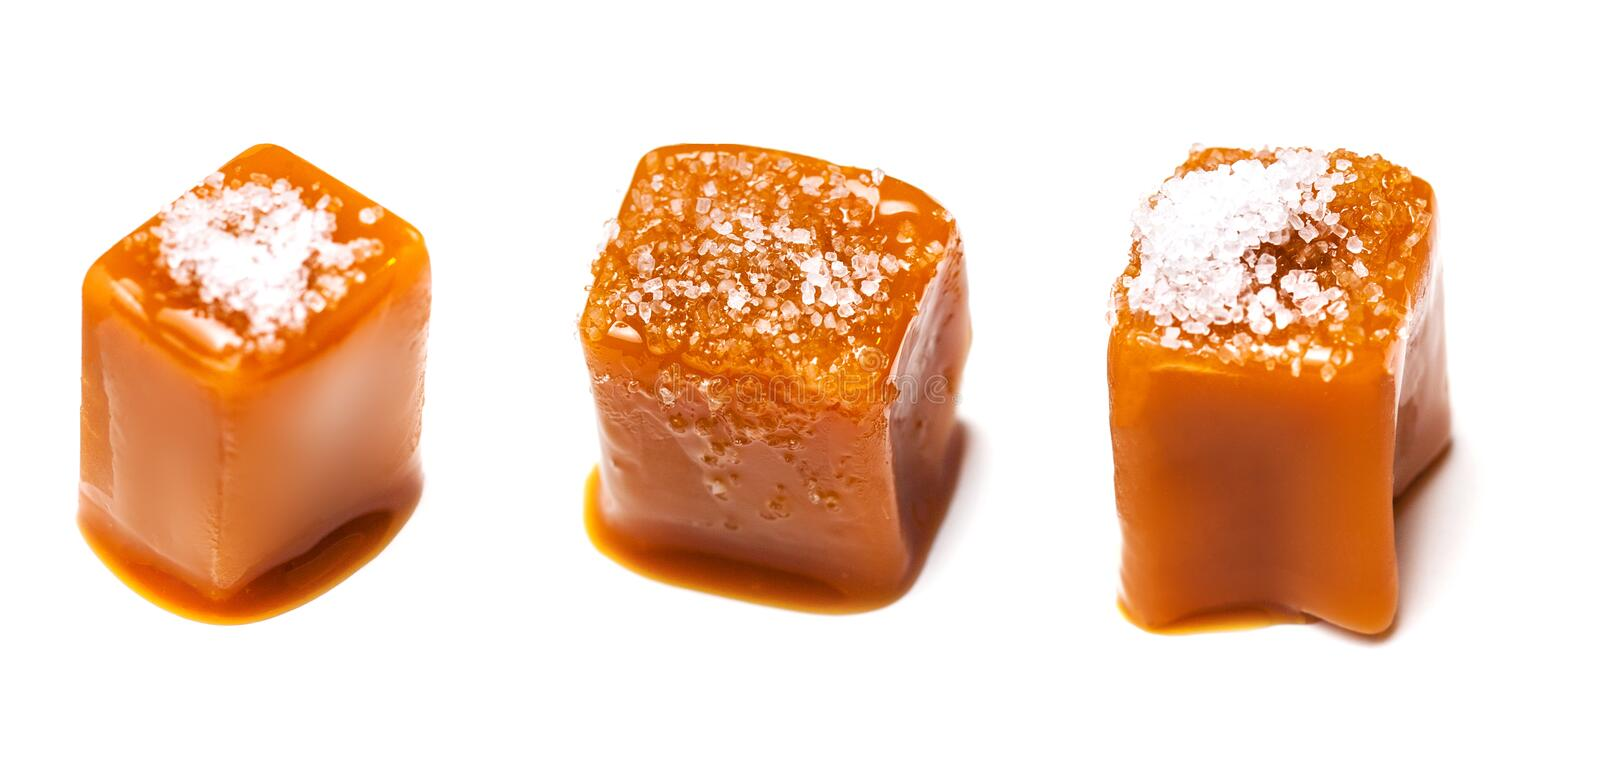 Homemade salted caramel pieces isolated on white background. Golden Butterscotch toffee candy caramels macro. Homemade salted caramel pieces isolated on white stock image